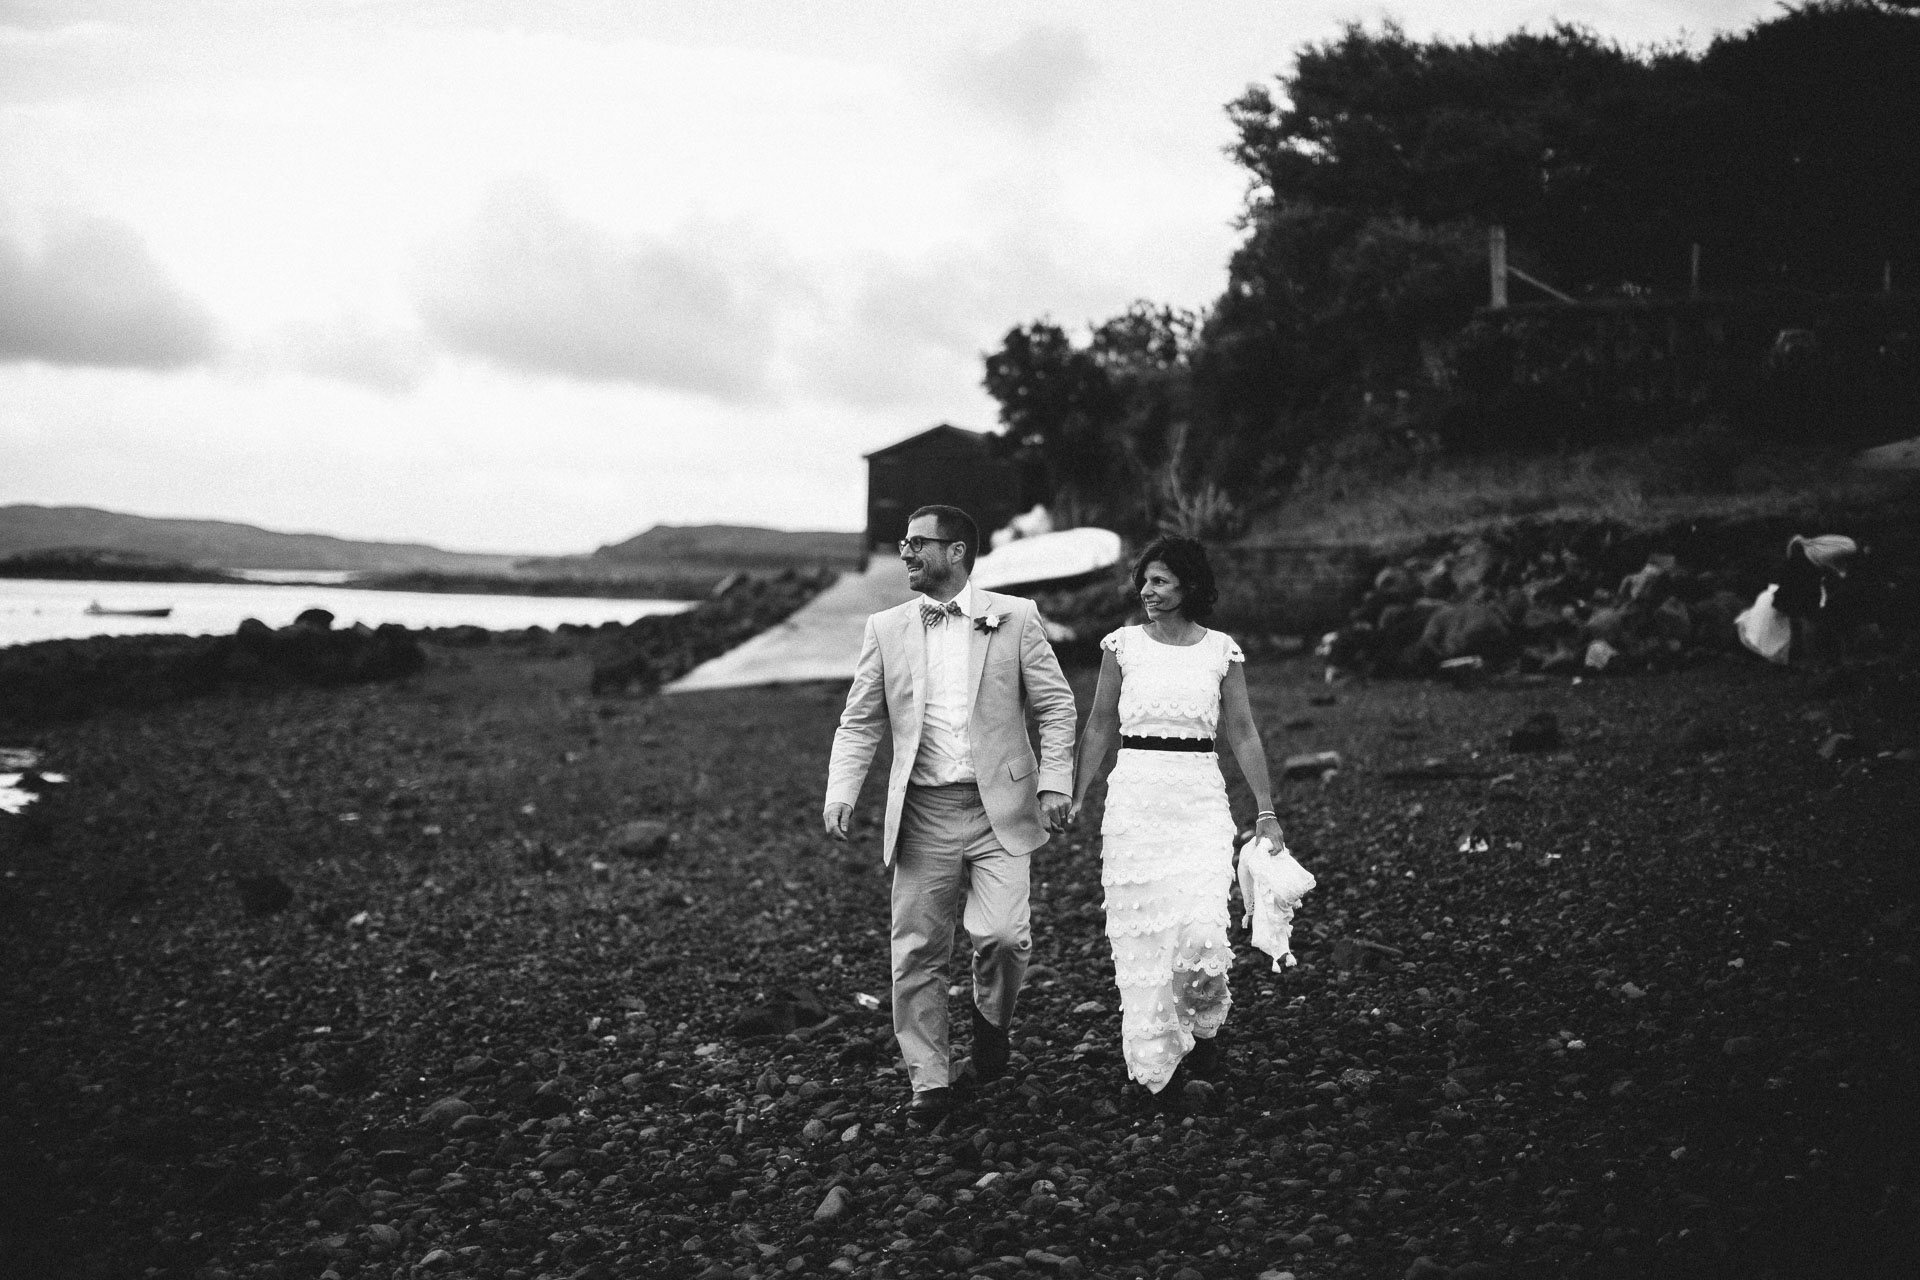 Megan_Matt_Elopement_IntimateWedding_Scotland_IsleOfSkye_JeanLaurentGaudy_112